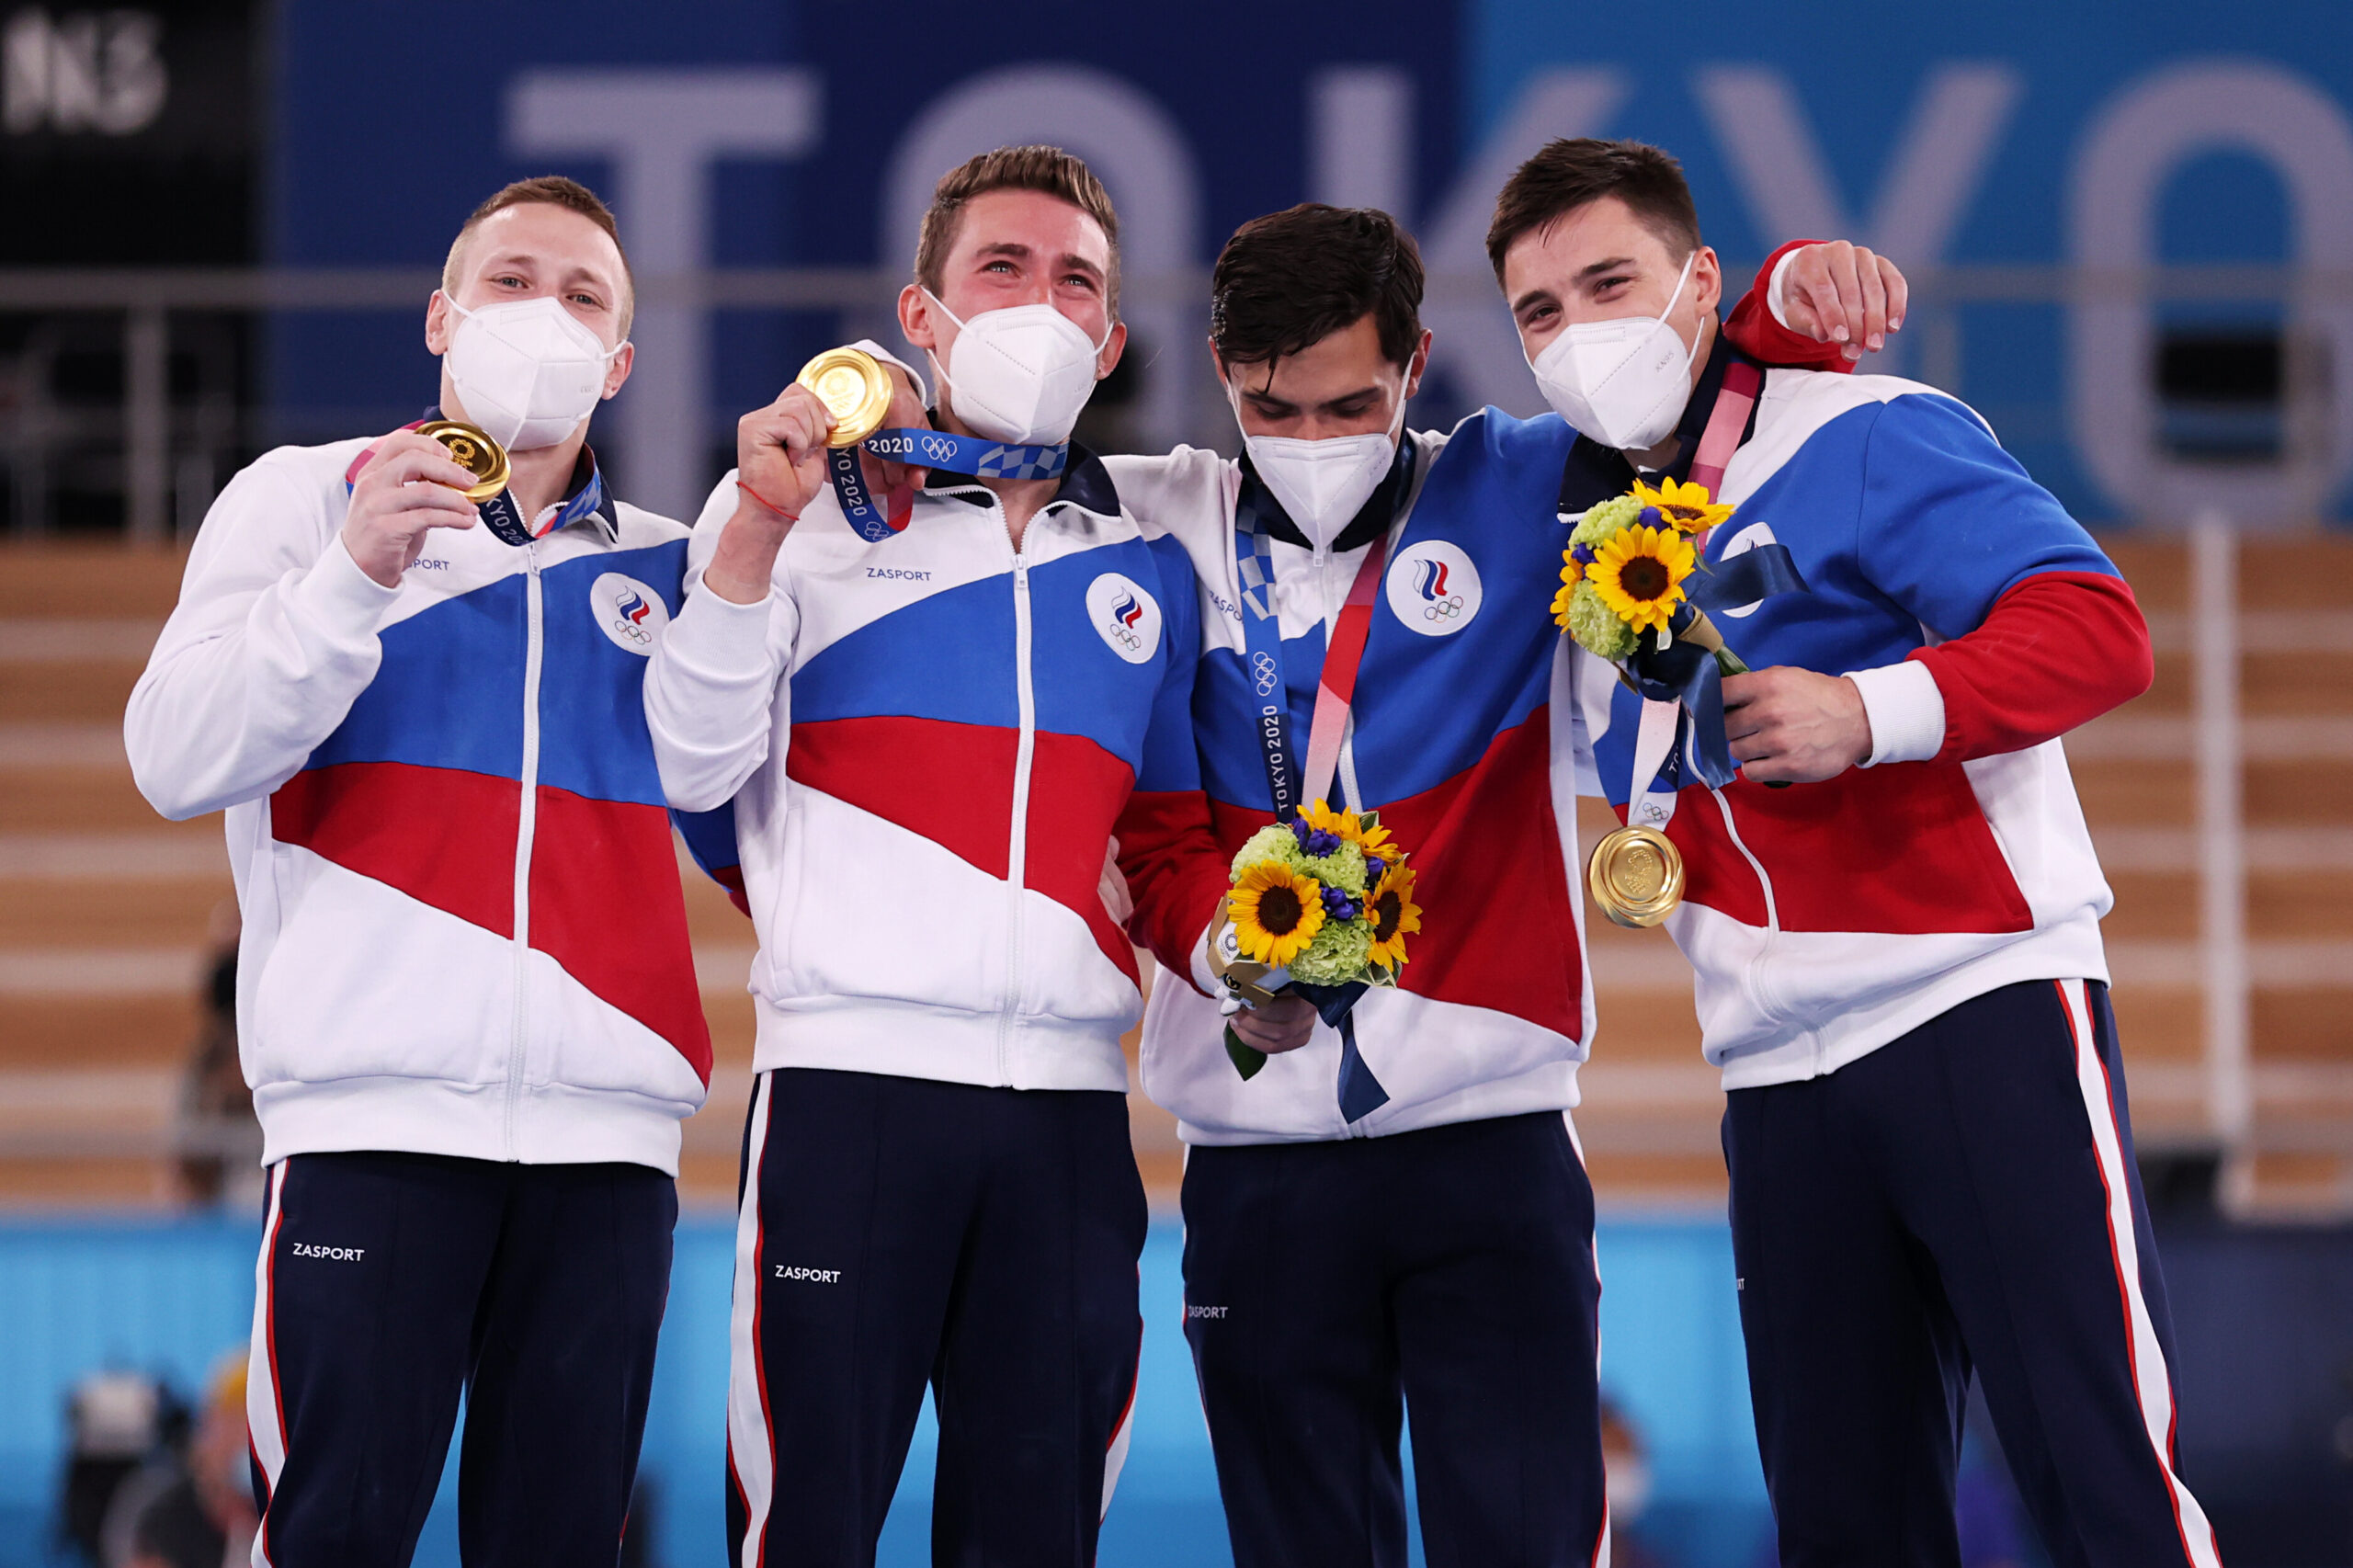 <i>Jamie Squire/Getty Images</i><br/>Gymnasts from Team ROC pose with the gold medal after winning the Men's Team Final on day three of the Tokyo Olympic Games.